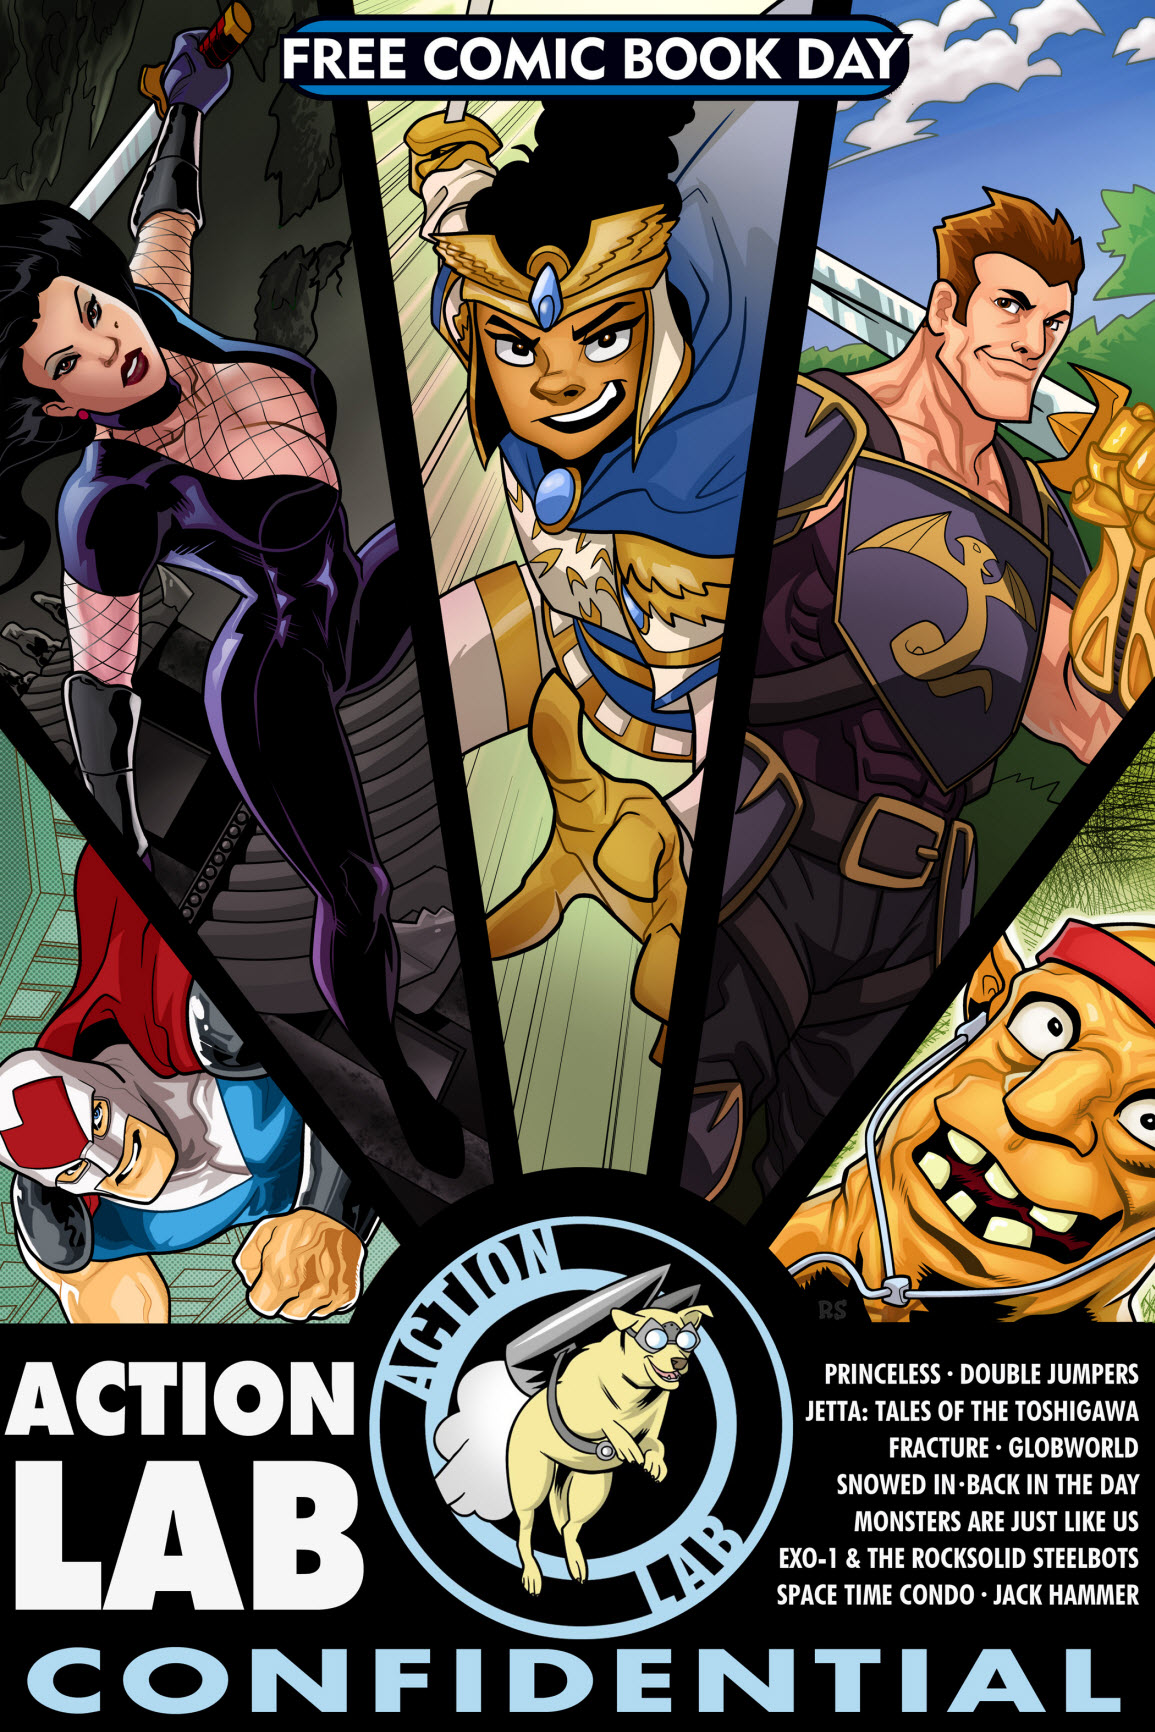 action lab offers 200 page free comic book day digital download